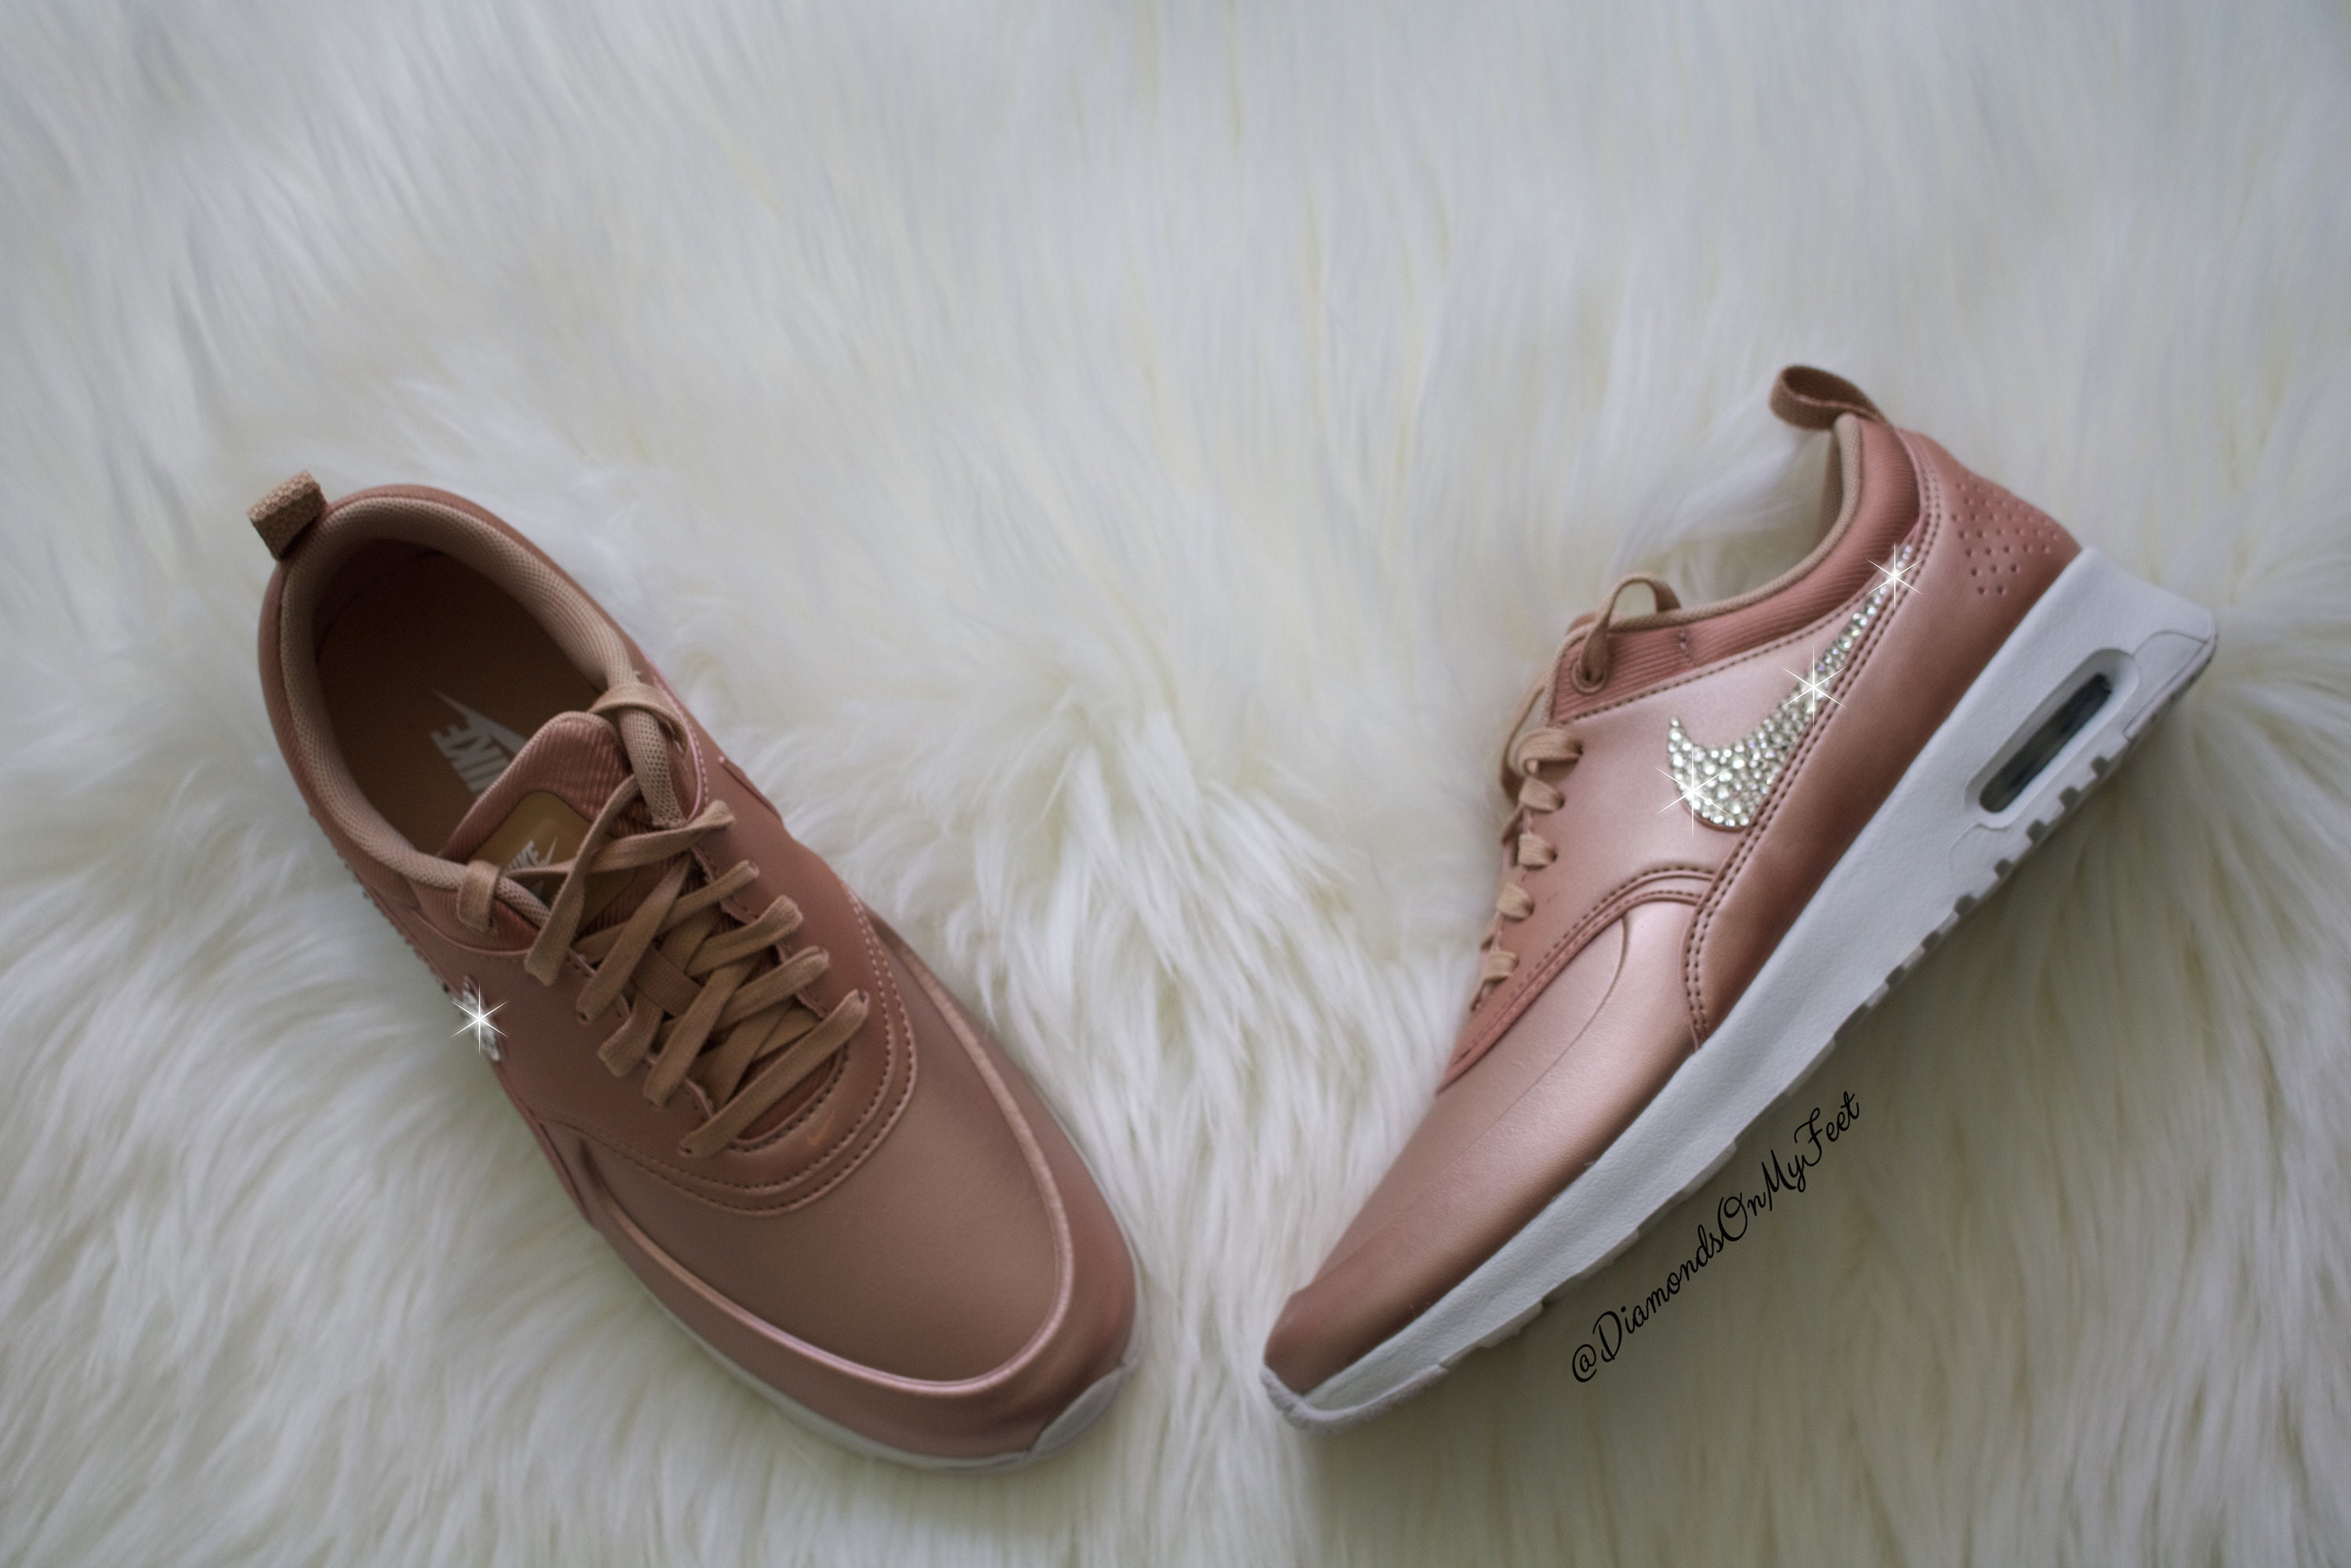 94f8d0c60ba Swarovski Women s Nike Air Max Thea Rose Gold   White